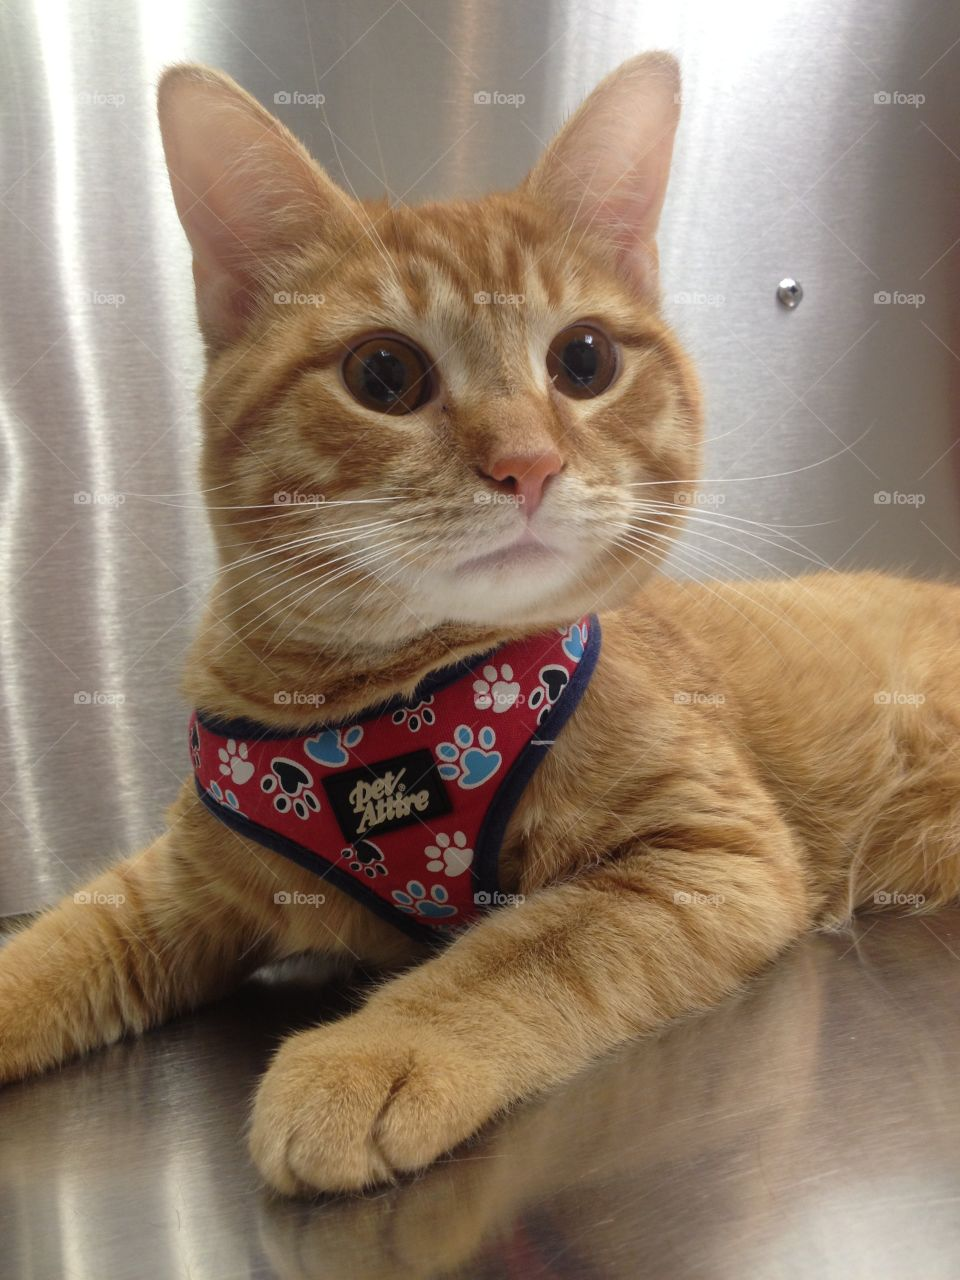 Orange Cat At Veterinary Office. Recently adopted orange shelter cat at veterinary office during yearly check up exam.